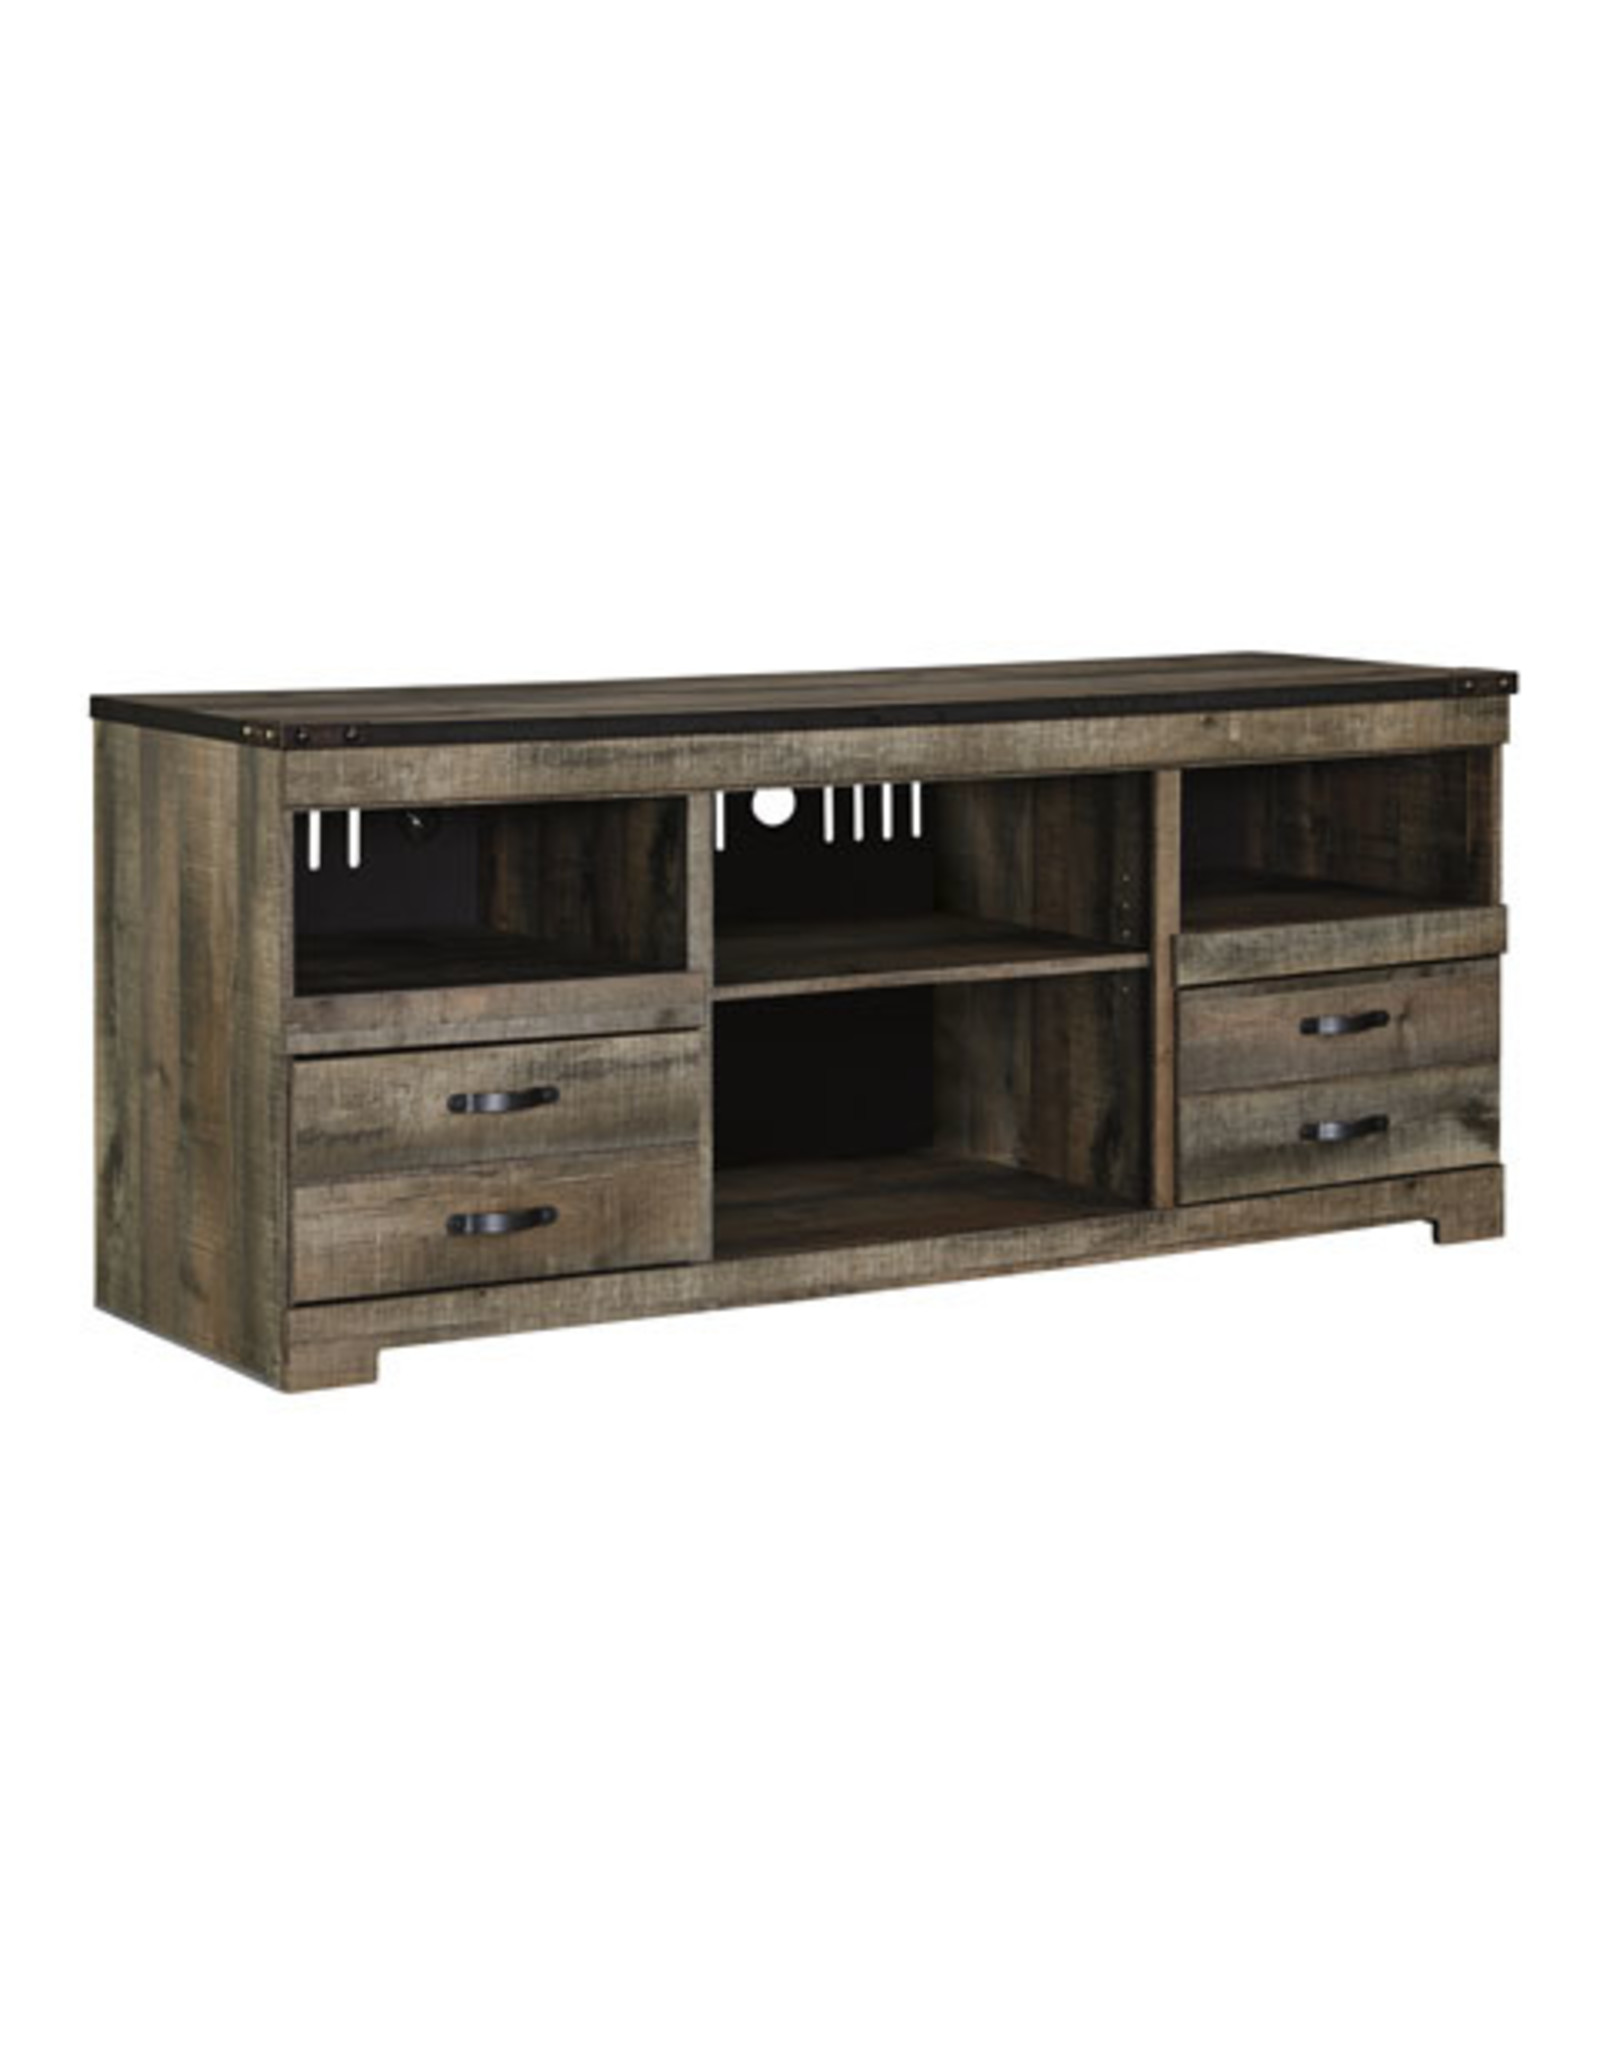 Trinell W446-68 TV Stand